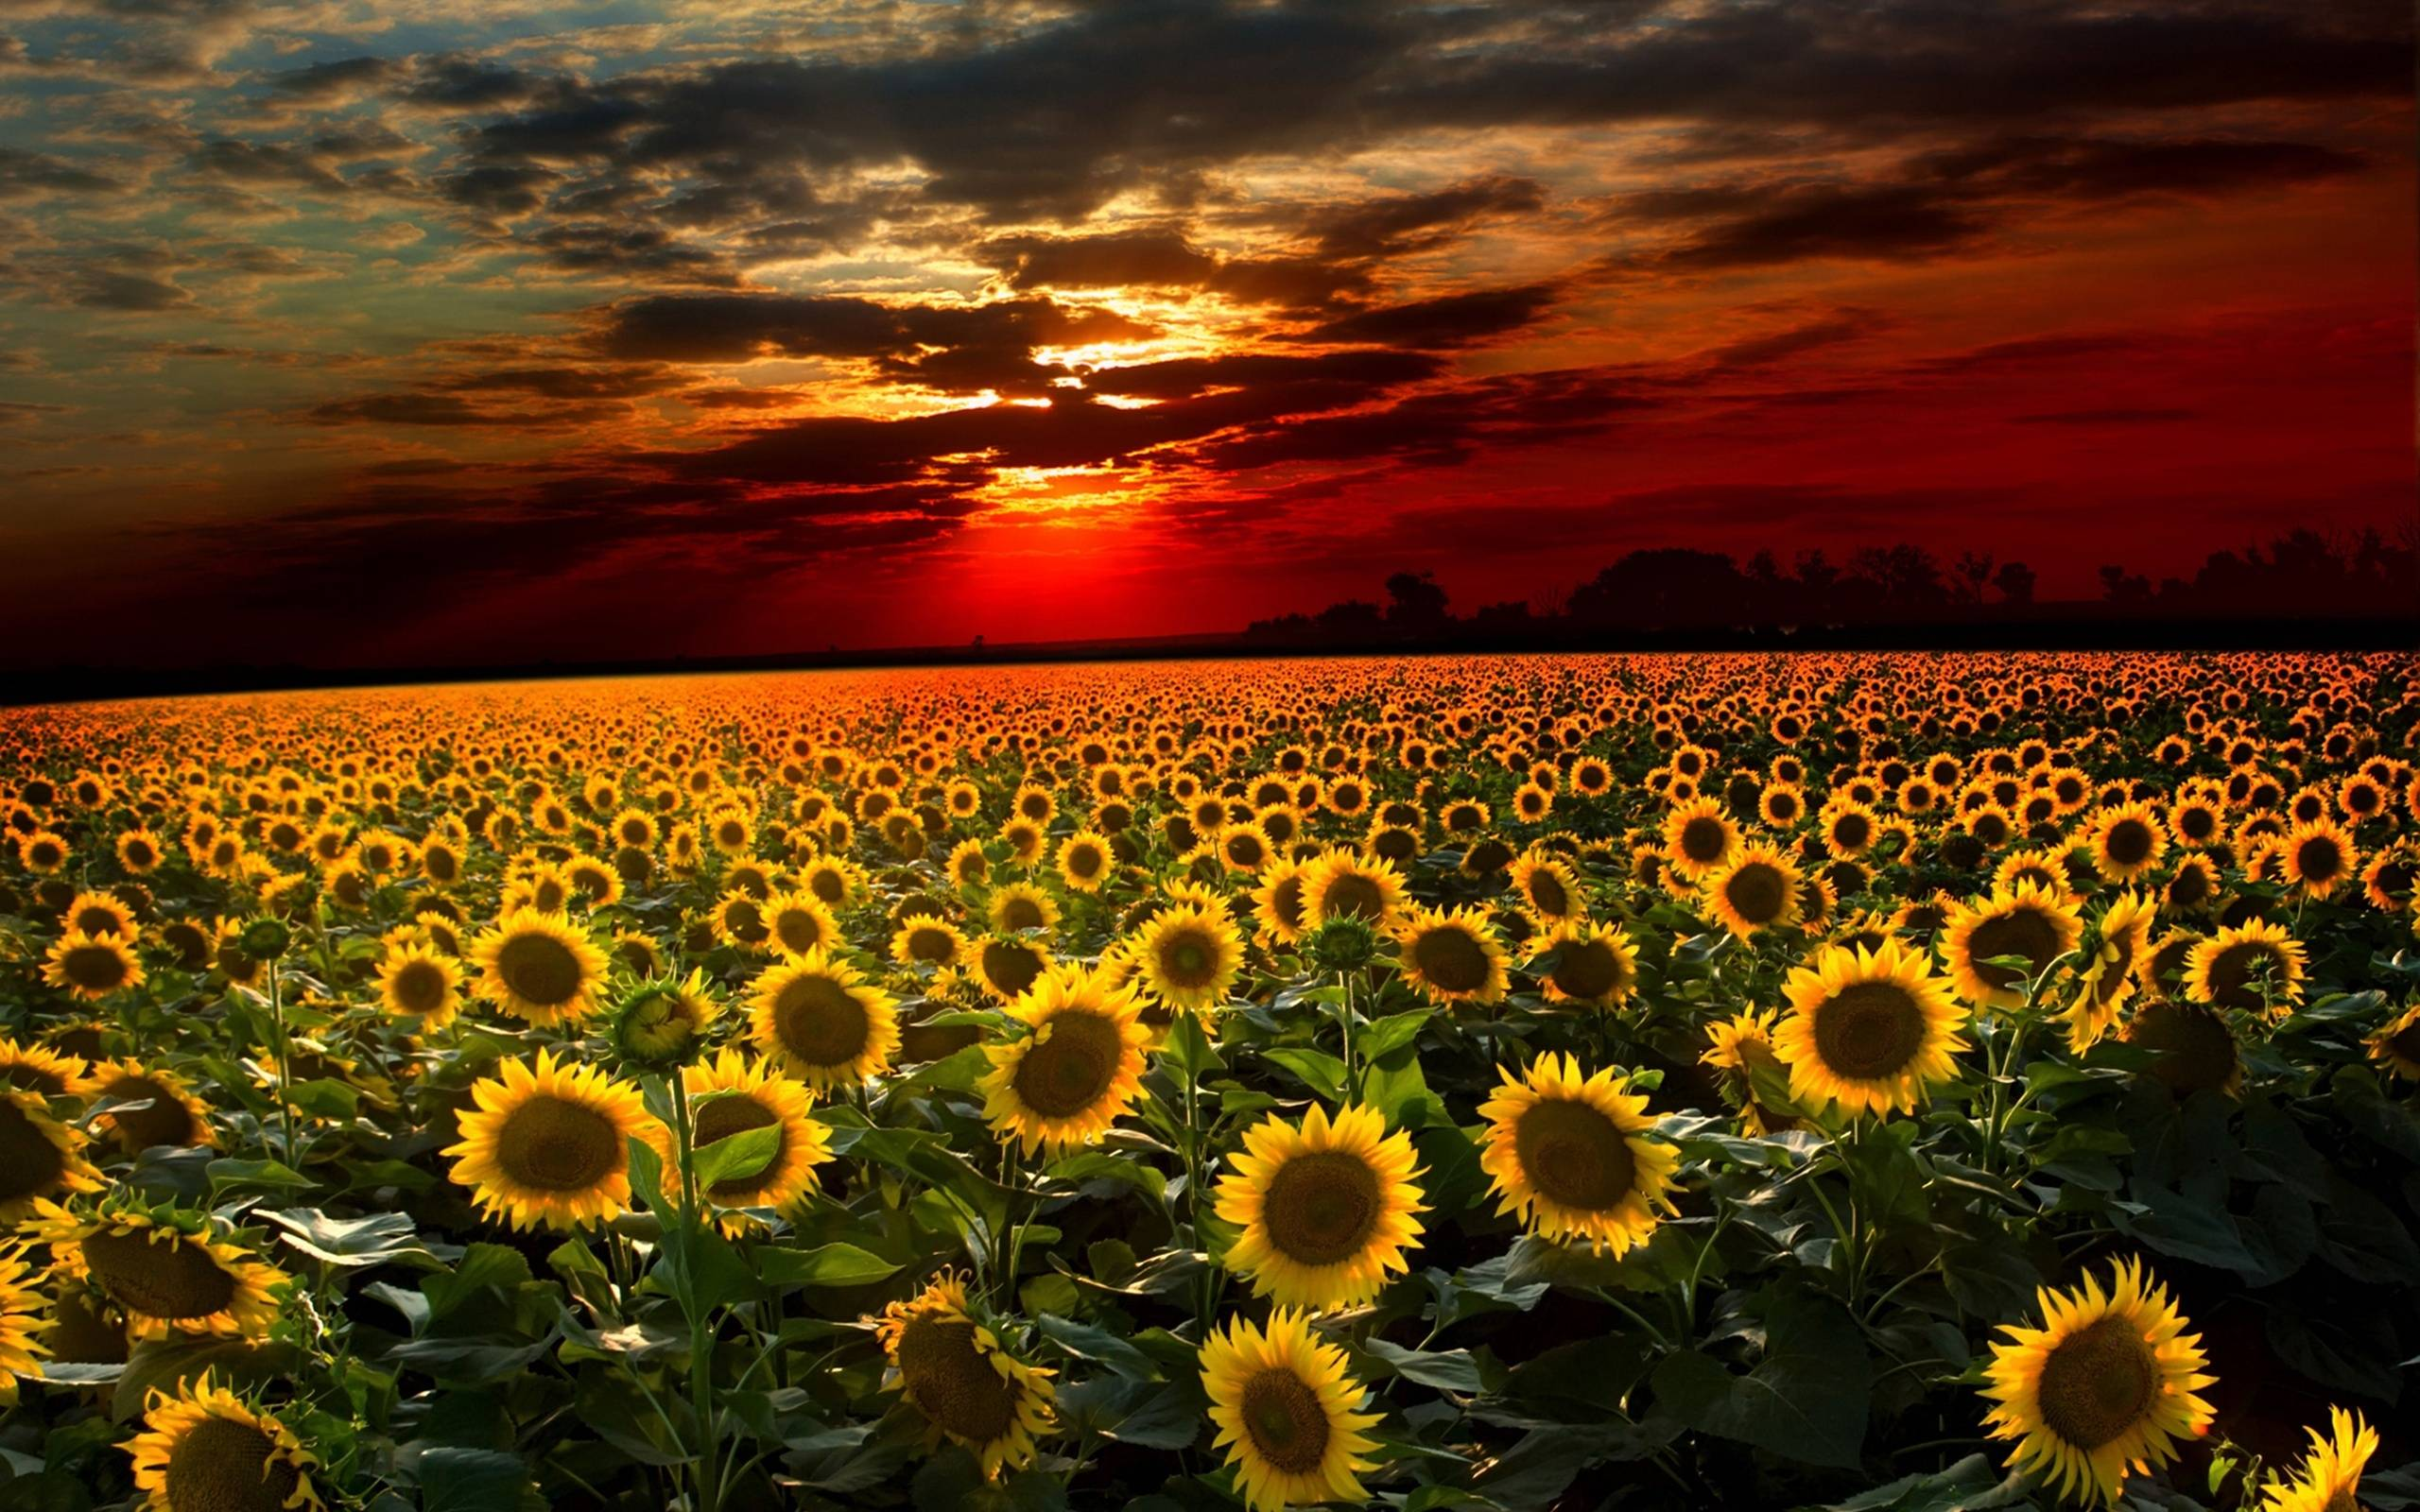 Field Of Sunflowers Wallpaper: Sunflower Wallpapers